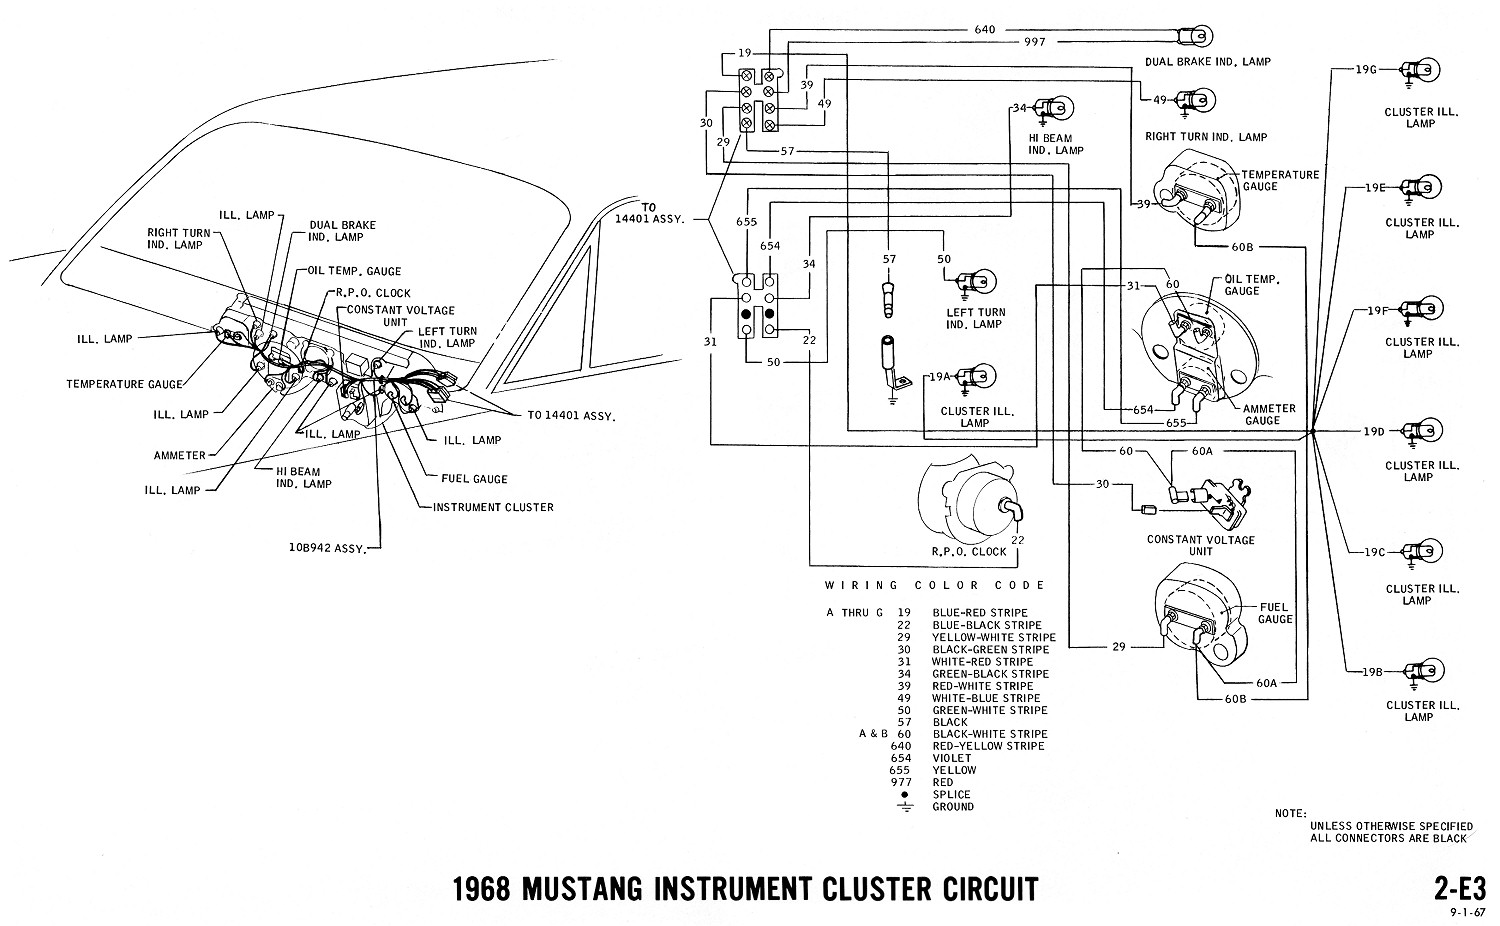 1968 mustang wiring diagrams evolving software instrument cluster clock gauges